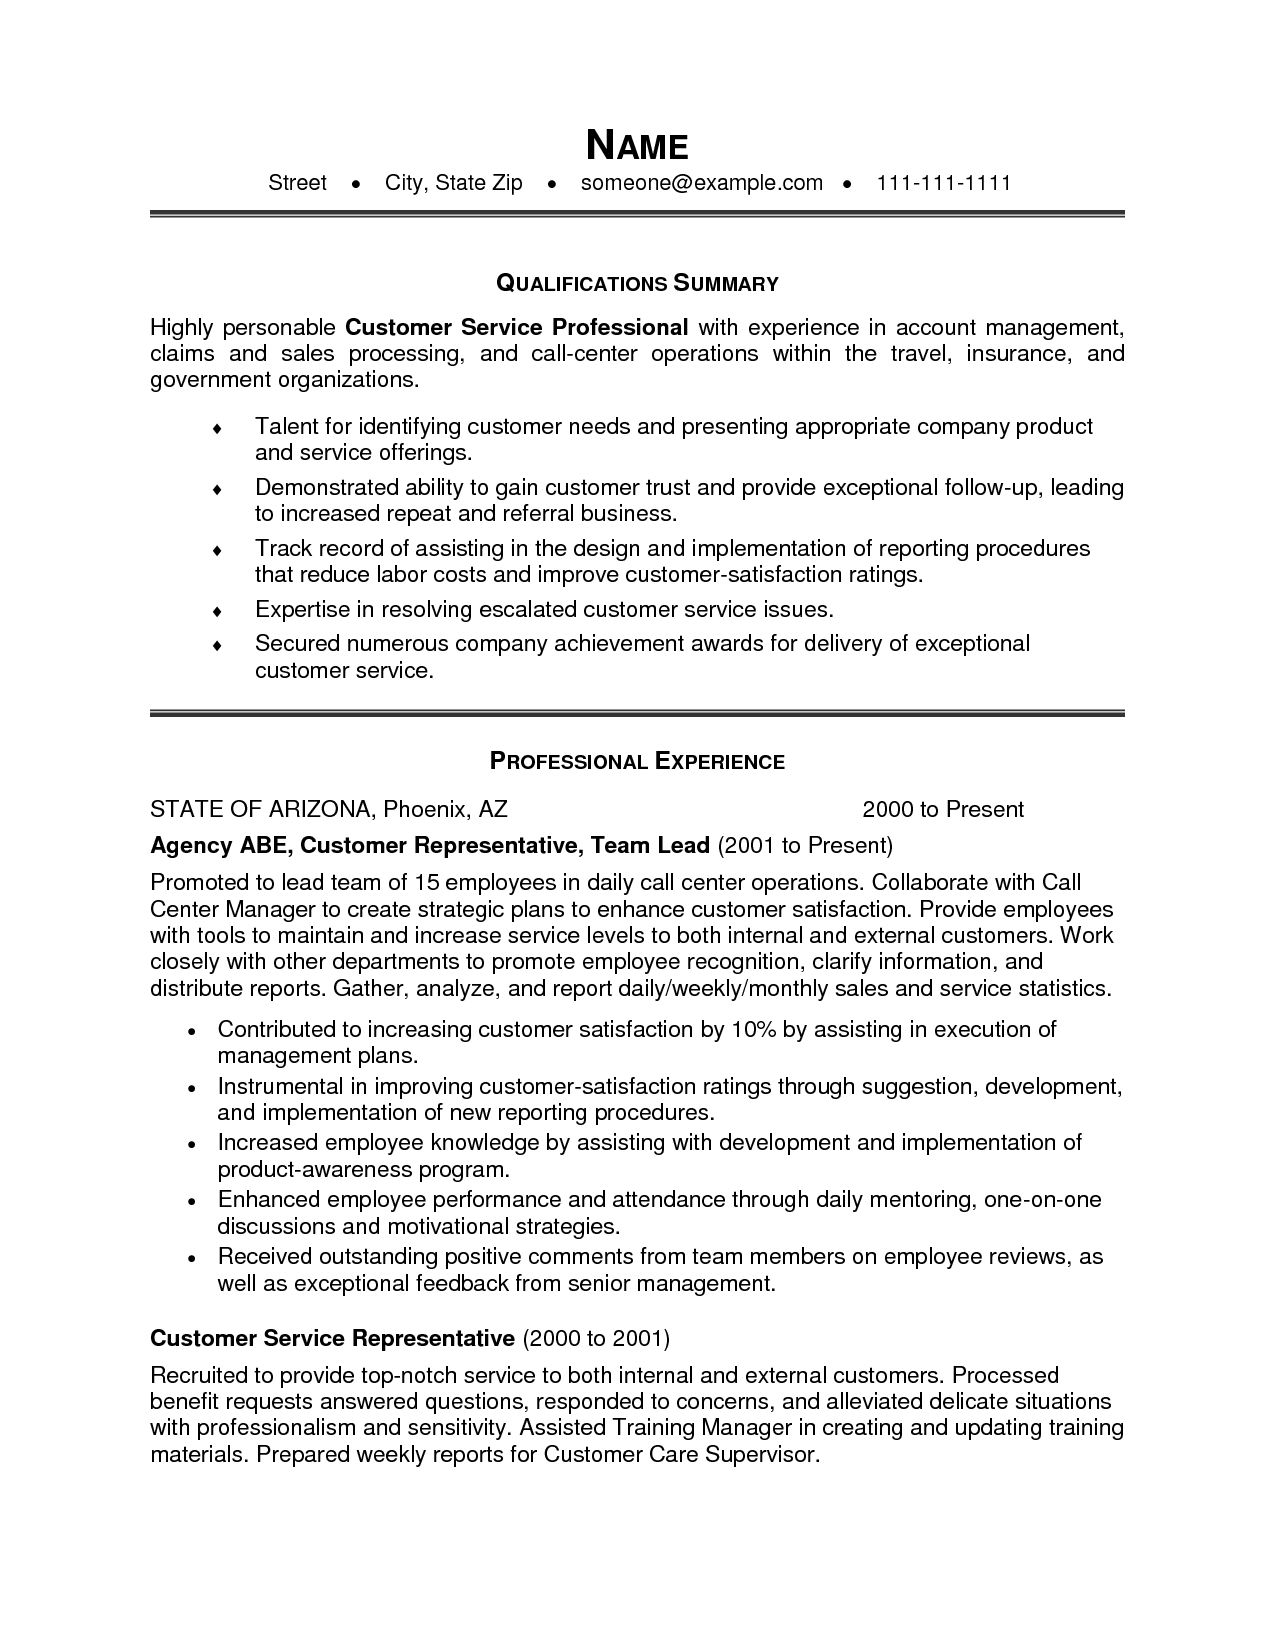 new customer service resume summary examples template statement best fonts hospitality Resume Resume Summary Statement Examples